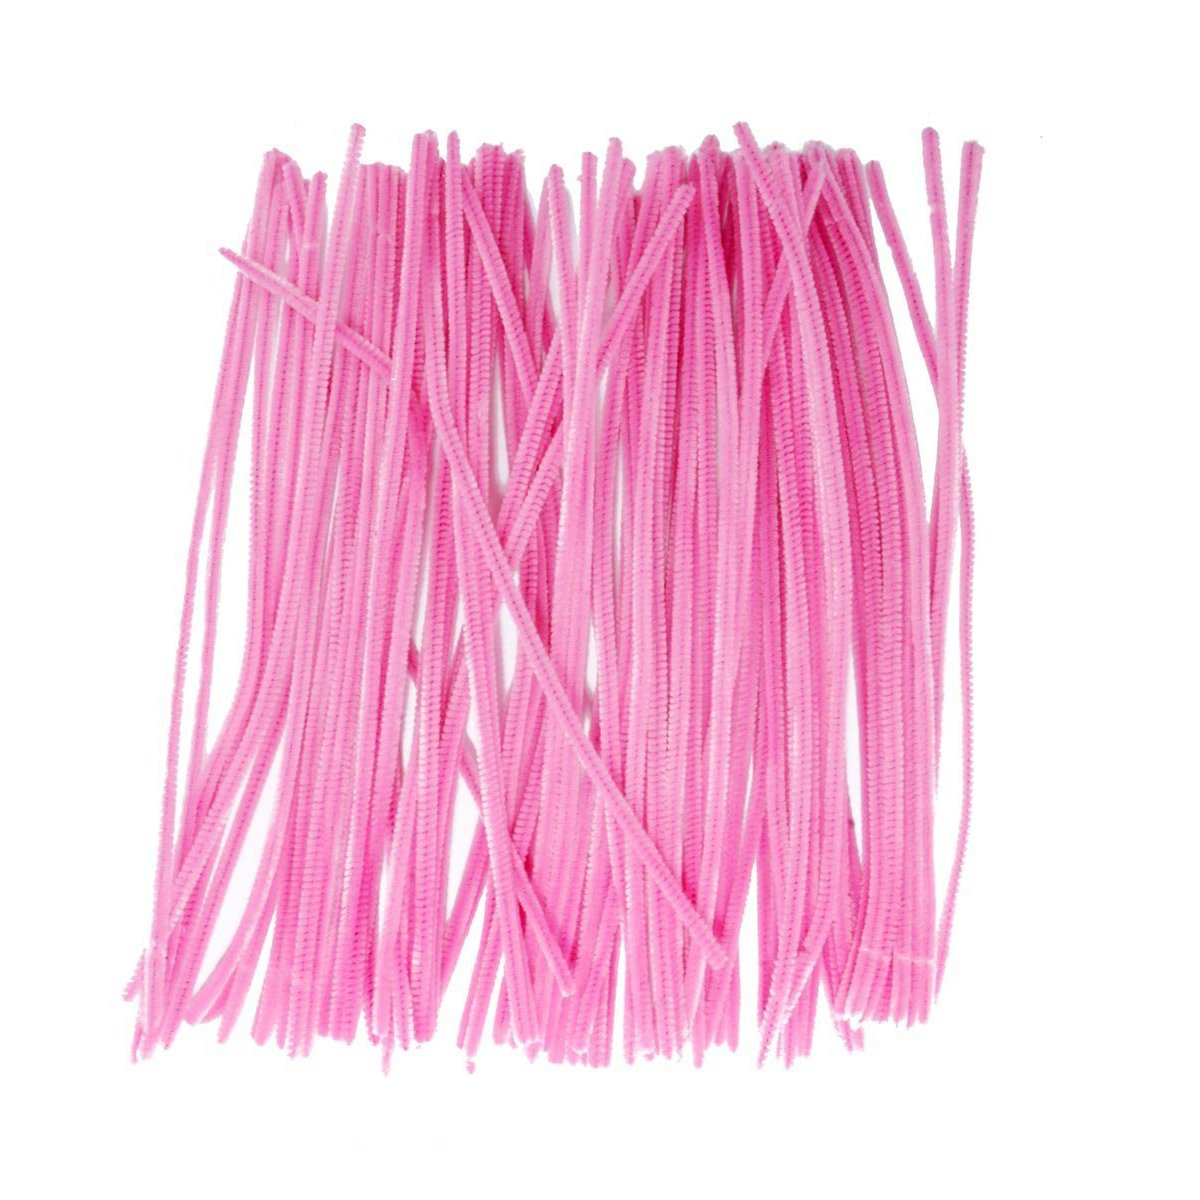 Saim Pipe Cleaners Chenille Stems 12 for Creative Handmade Arts and Crafts, Pack of 100 D0000011785